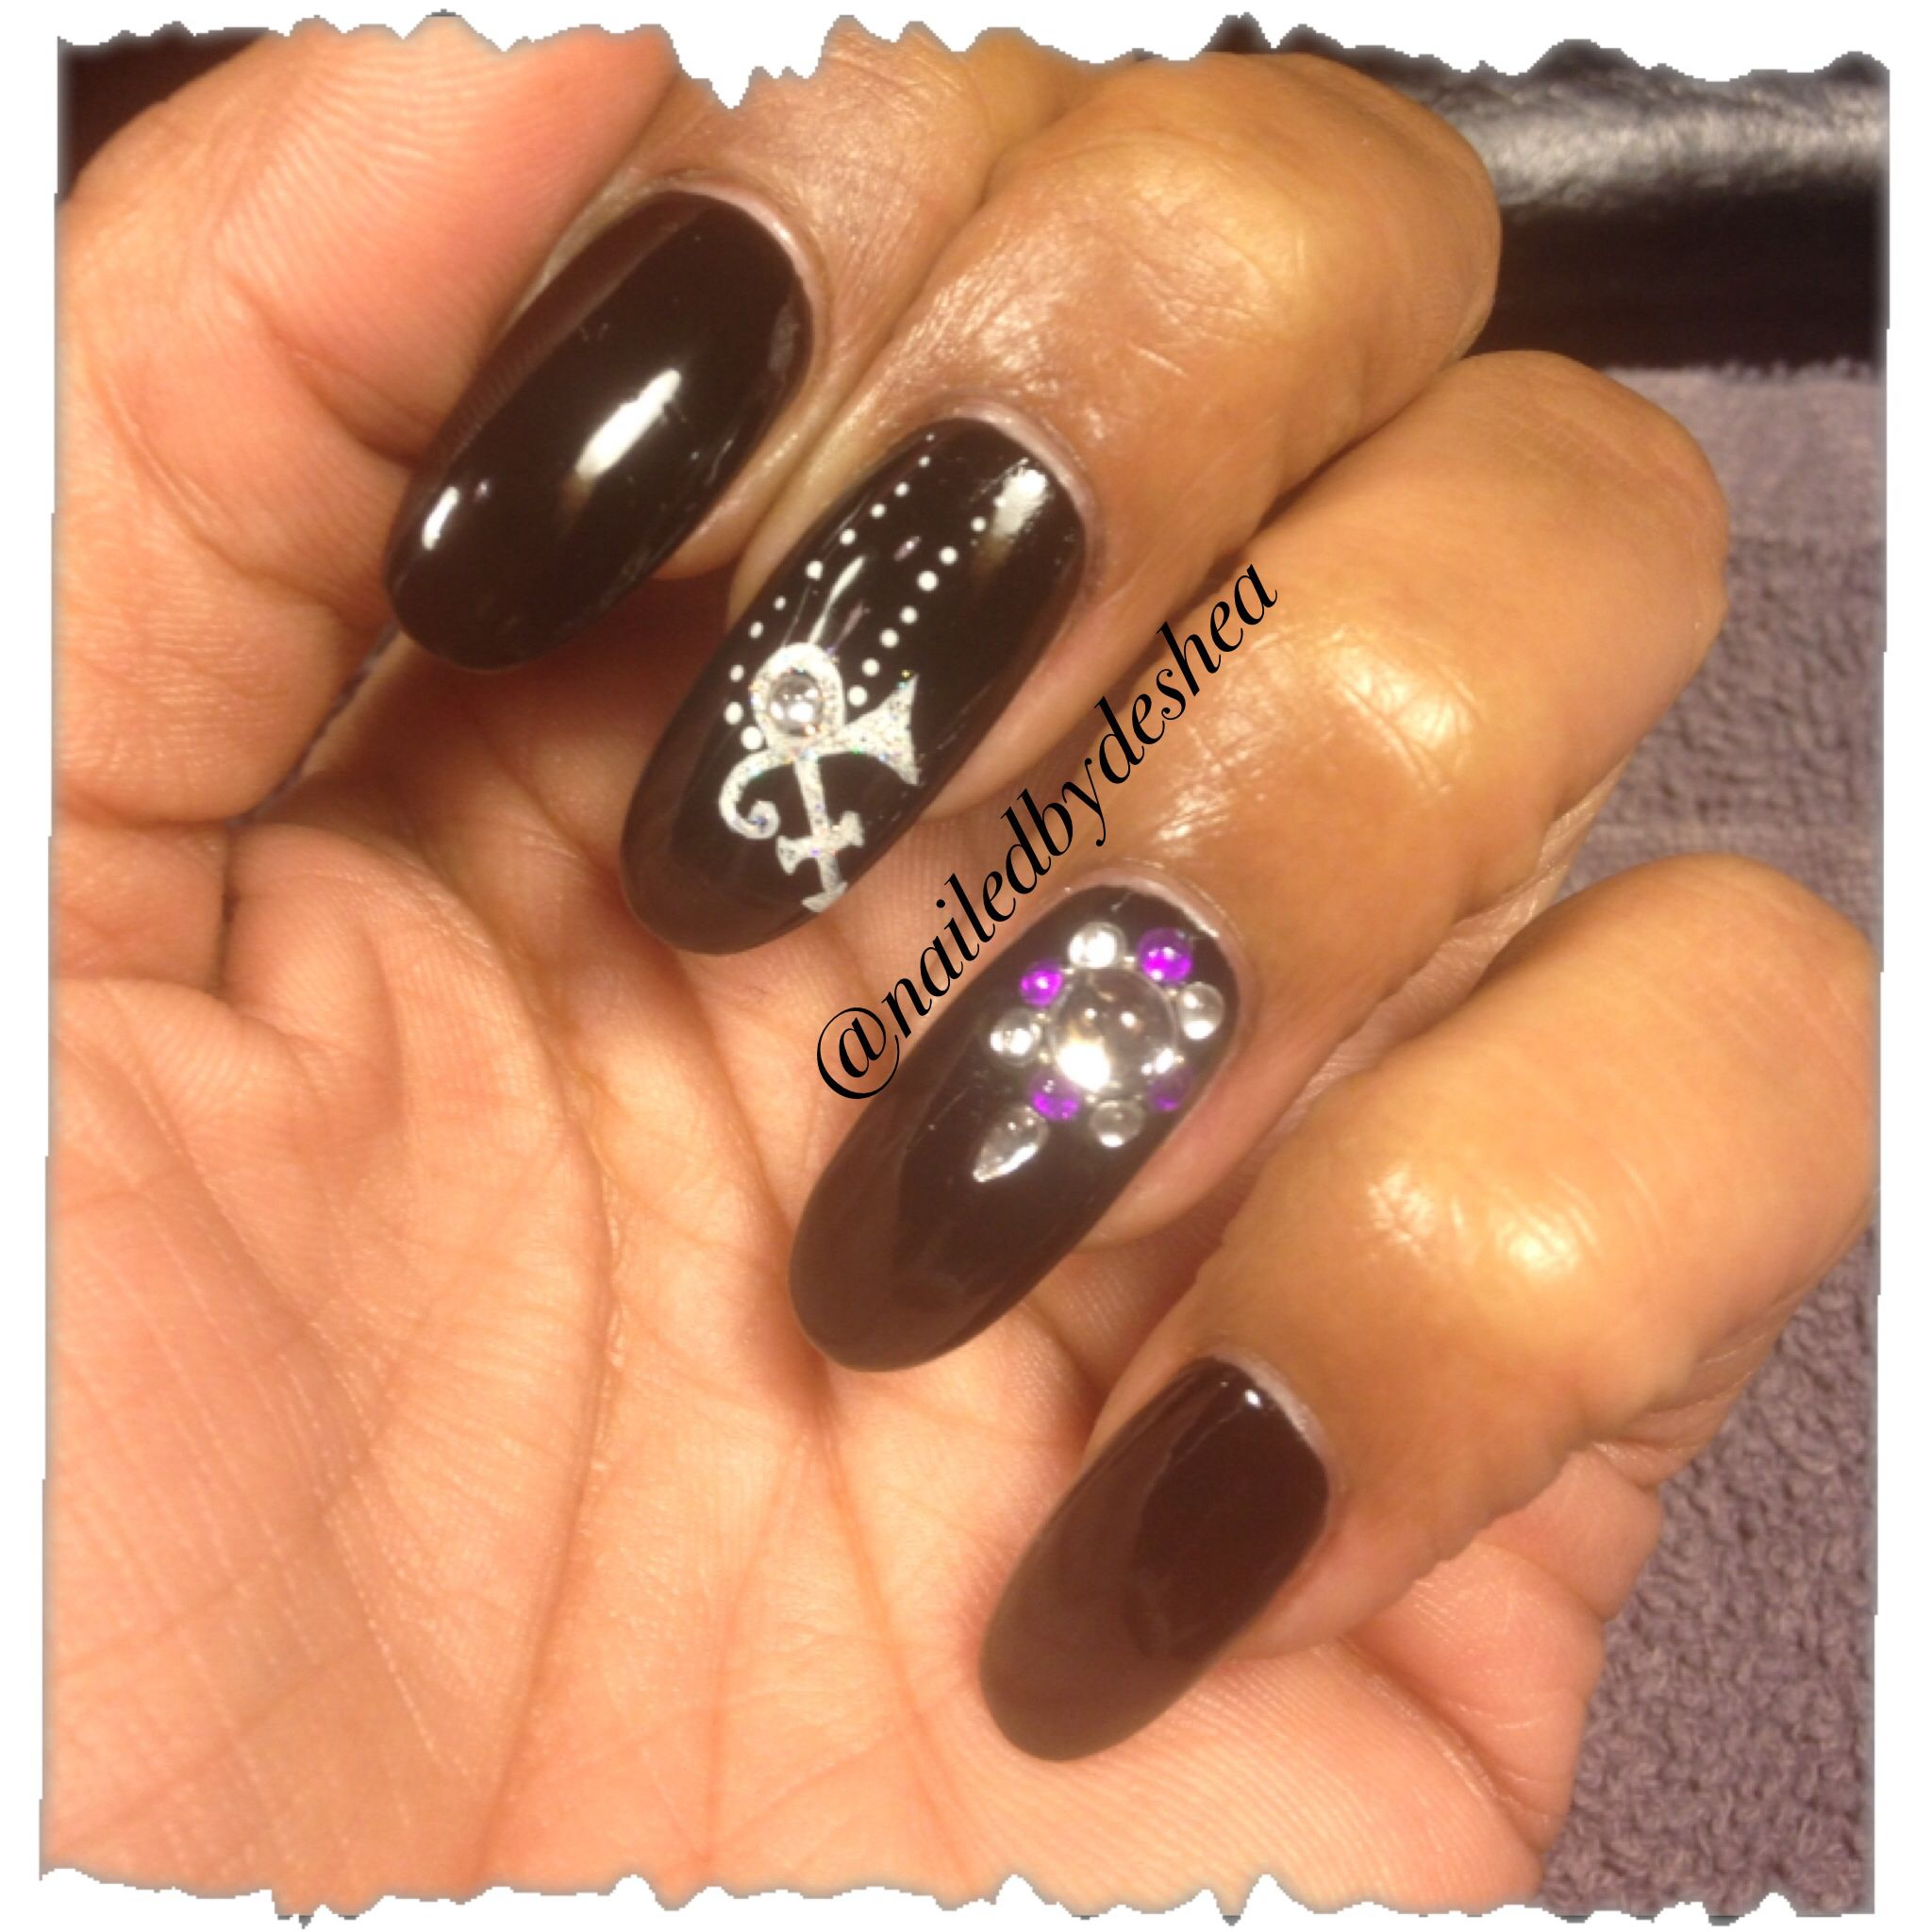 Prince The Artist Bling Nailart Nails